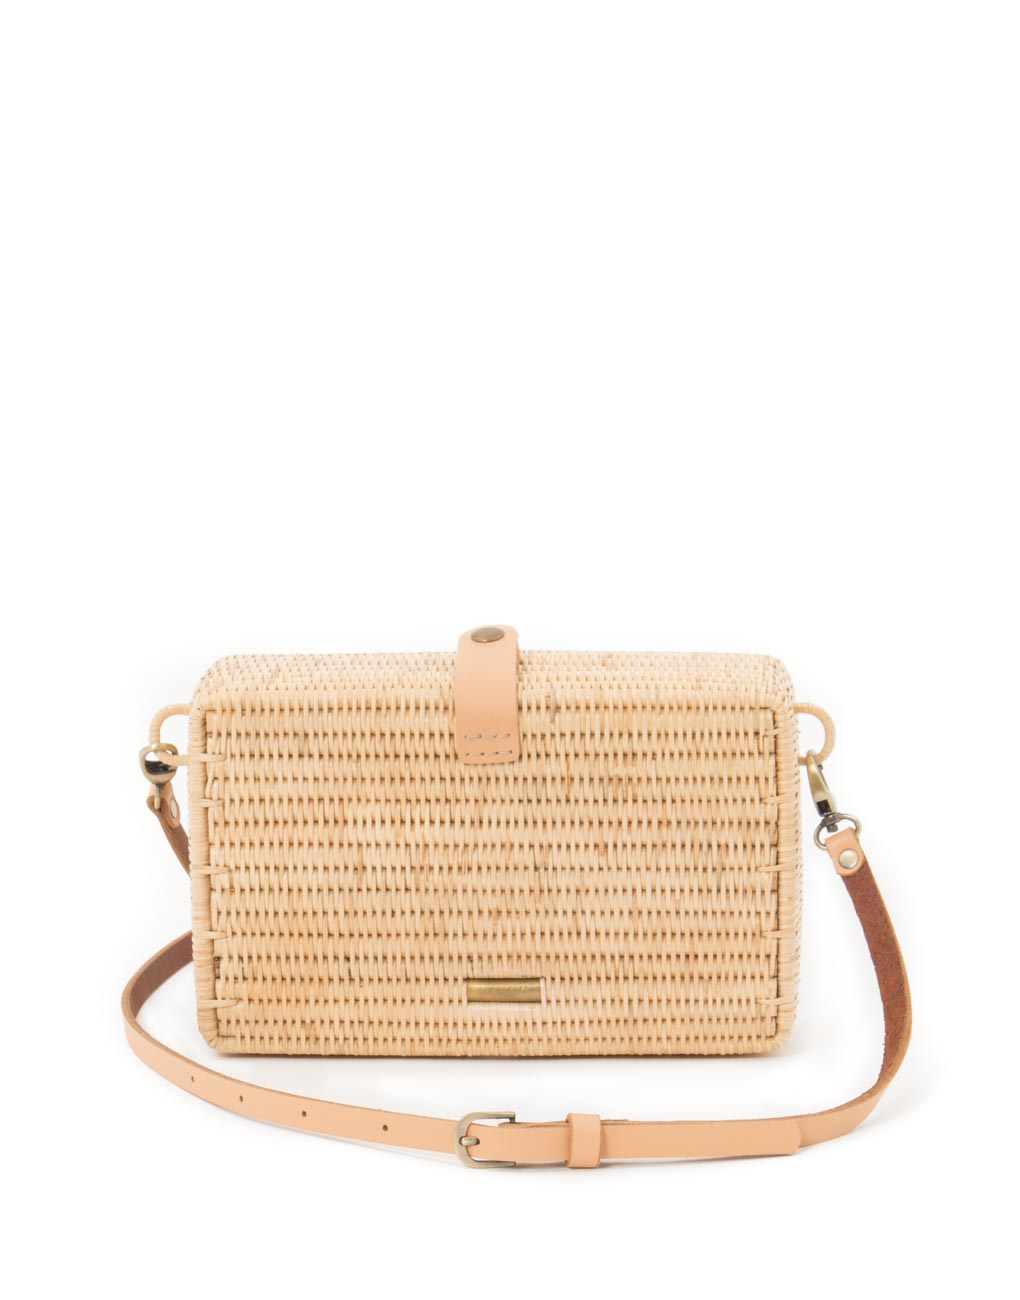 Rectangular Crossbody Natural Rattan Bag - Tan | The Little Market